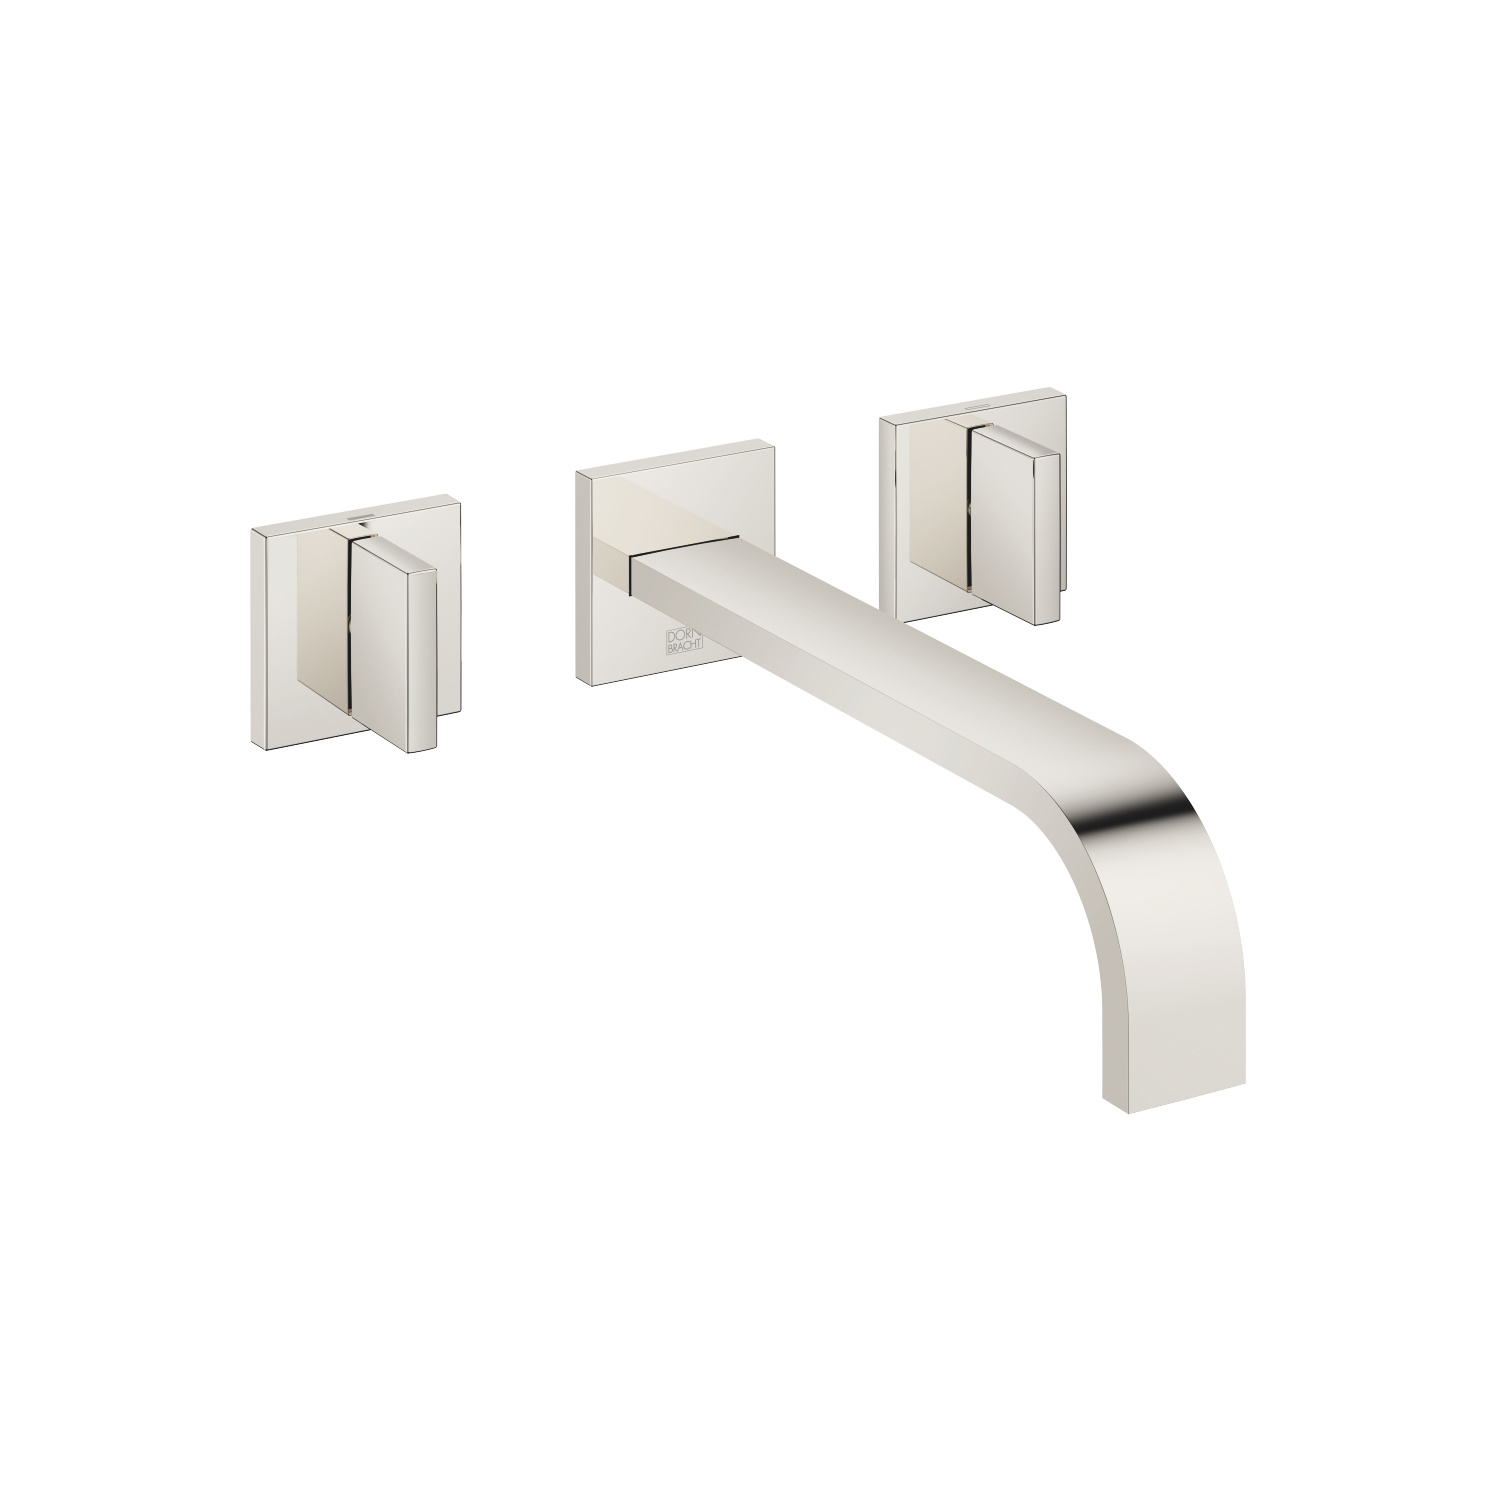 Wall-mounted basin mixer without pop-up waste - platinum - 36 717 782-08